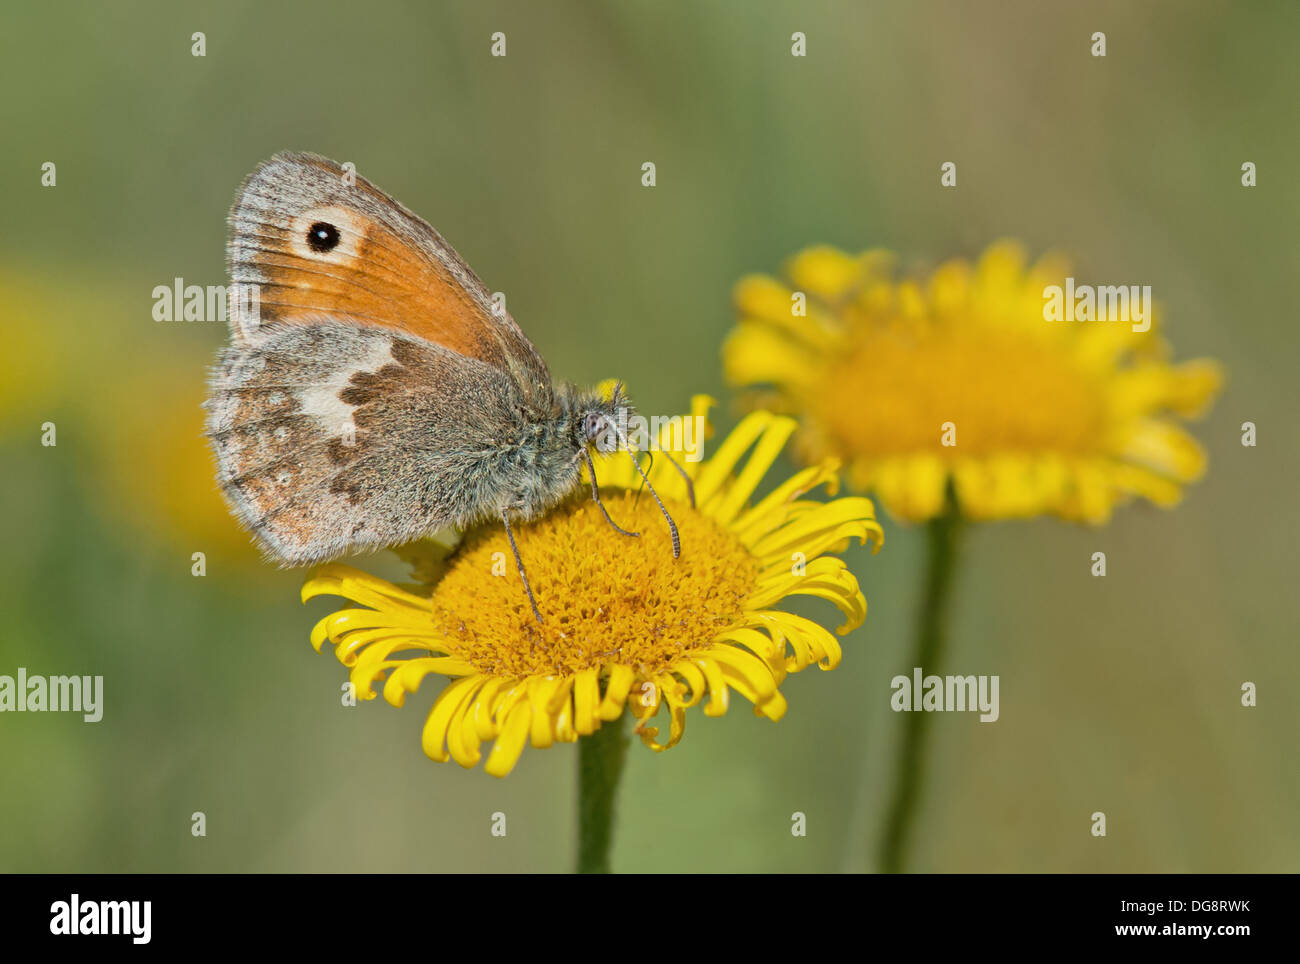 Small Heath-Coenonympha pamphilus, Butterfly Feeding On Yellow Camomile-Anthemis tinctoria. Uk - Stock Image